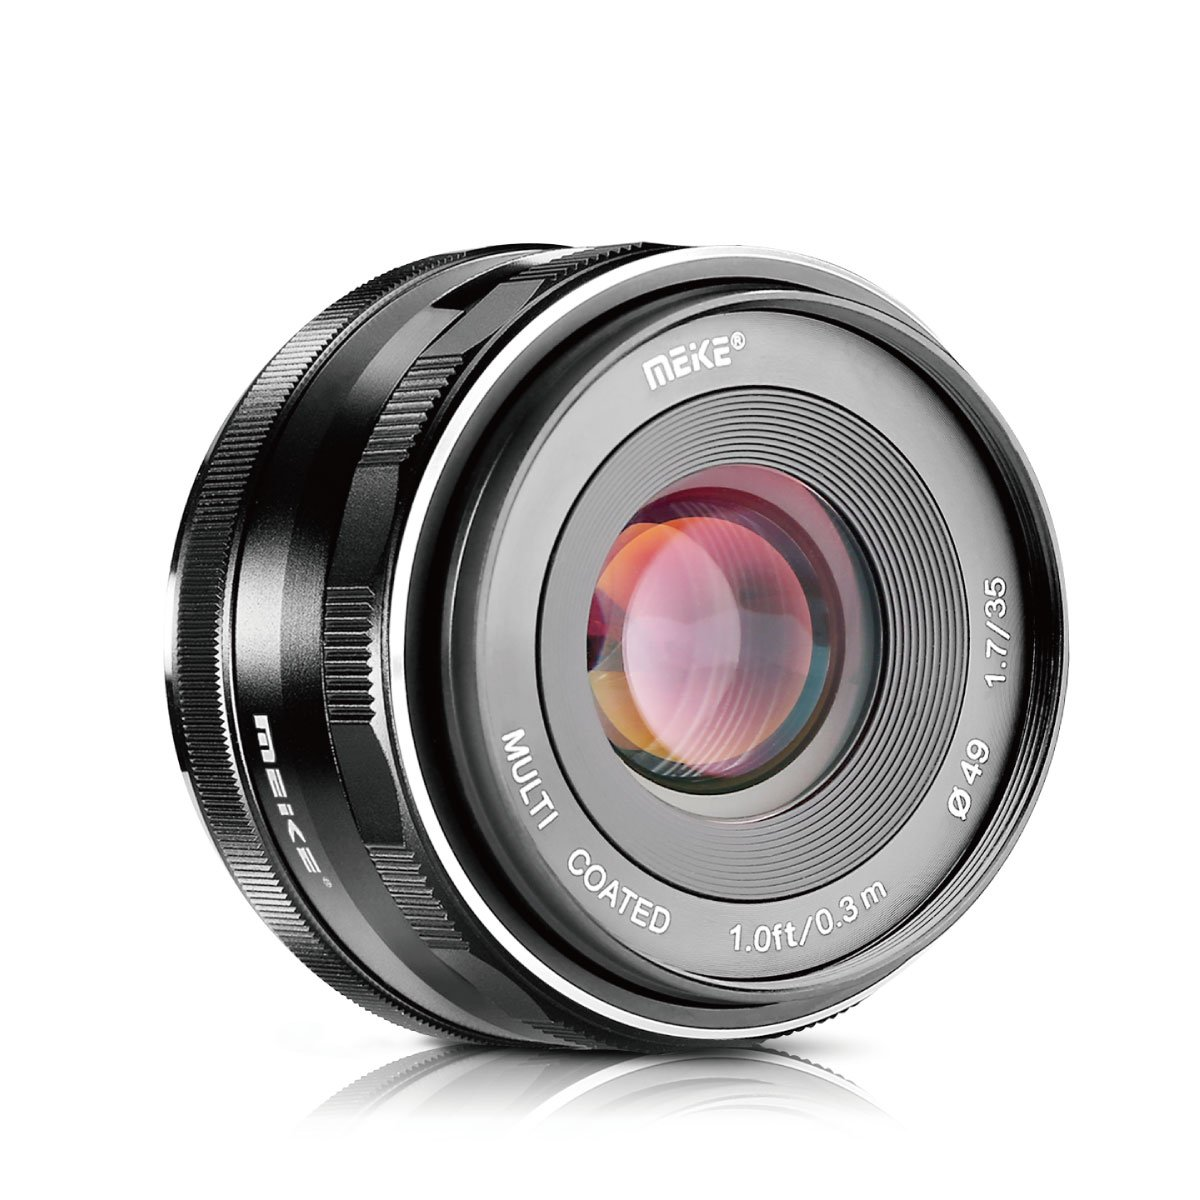 Meike 35mm F1.7 Manual Focus Prime Lens for Micro Four Thirds MFT M4/3 Olympus and Panasonic Digital Mirrorless Cameras